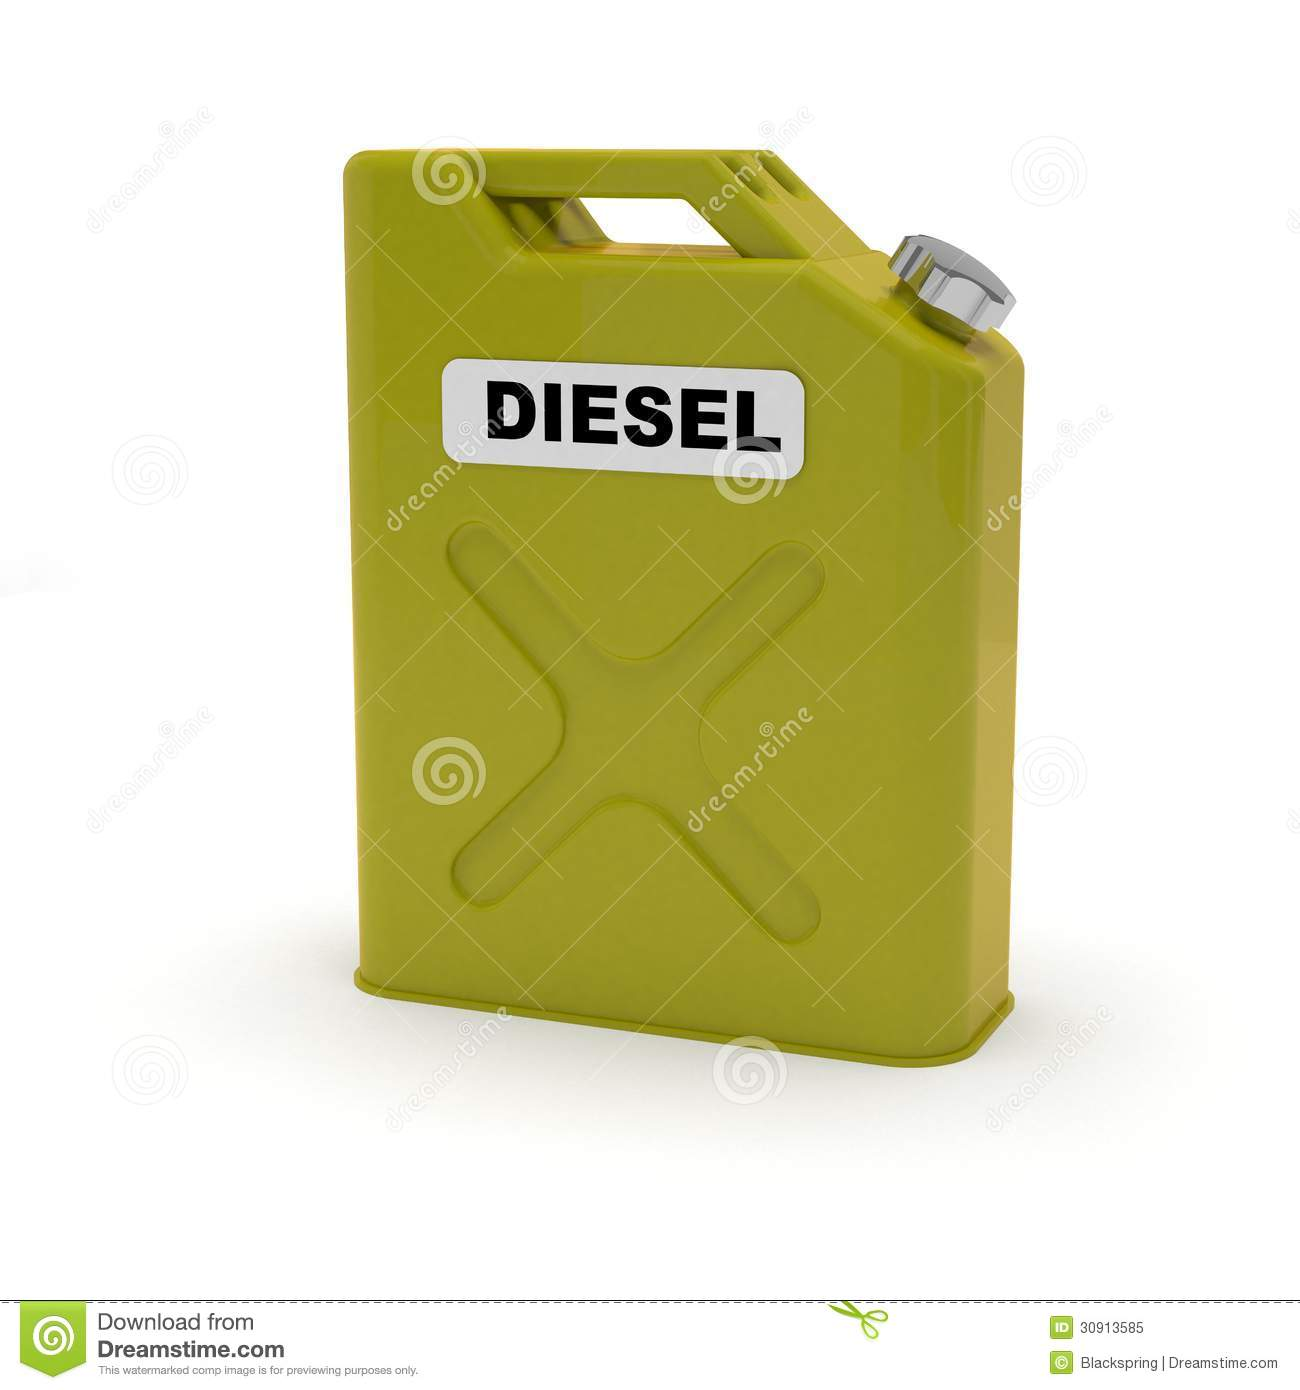 Diesel Jerrycan Royalty Free Stock Photo - Image: 30913585